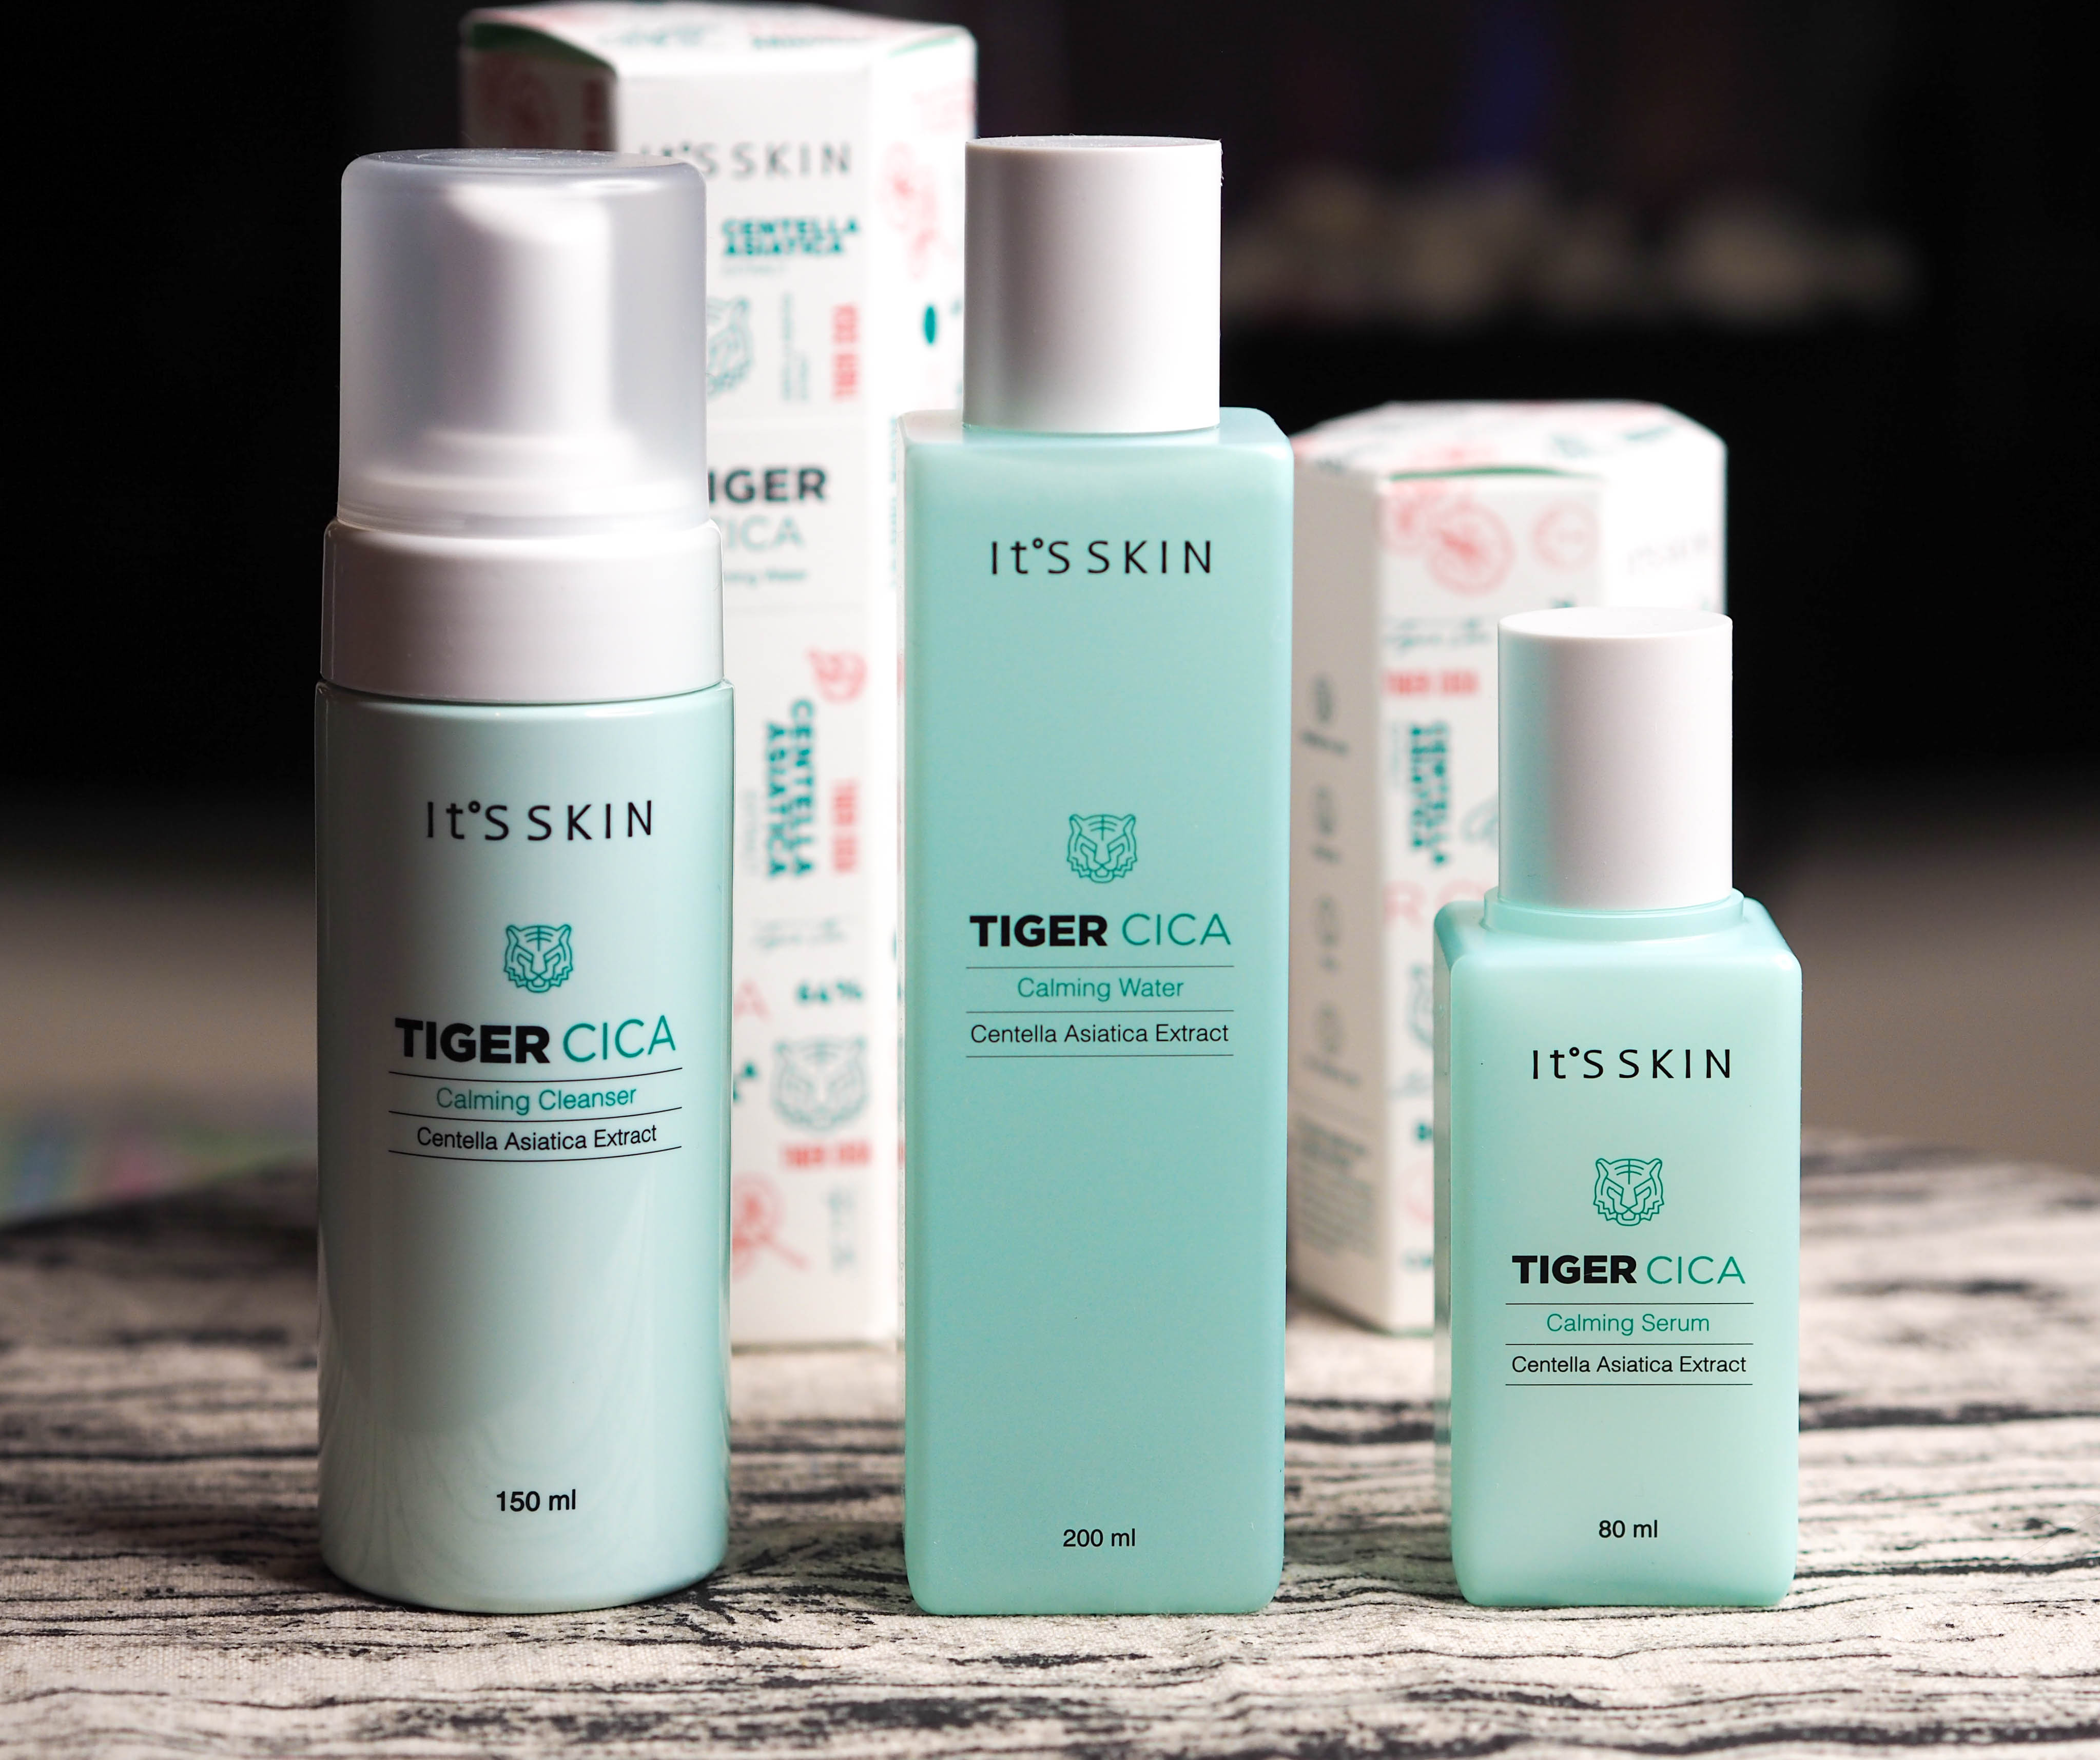 It's Skin Tiger Cica Calming Range Review